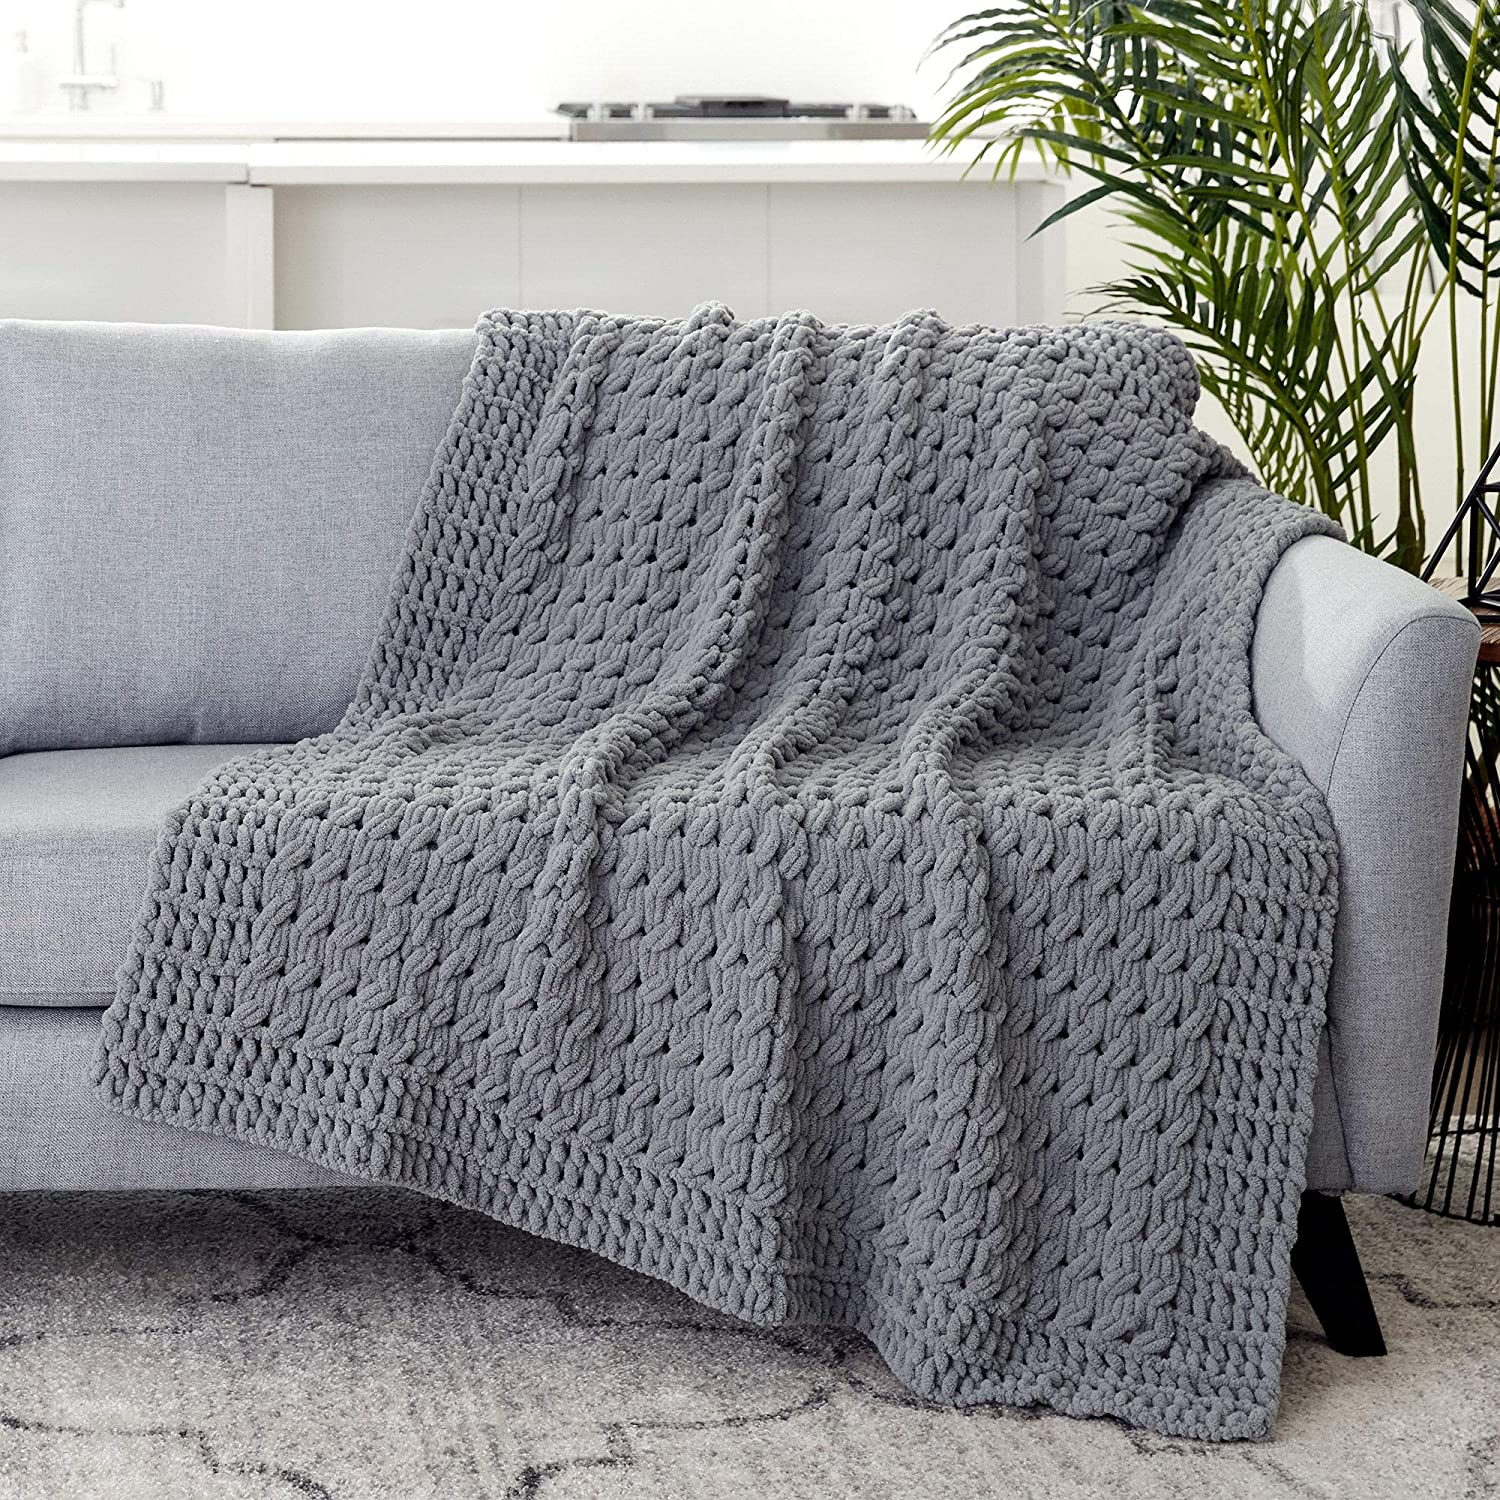 Bernat 16103737023 Alize Blanket-EZ Yarn Harvest Grays